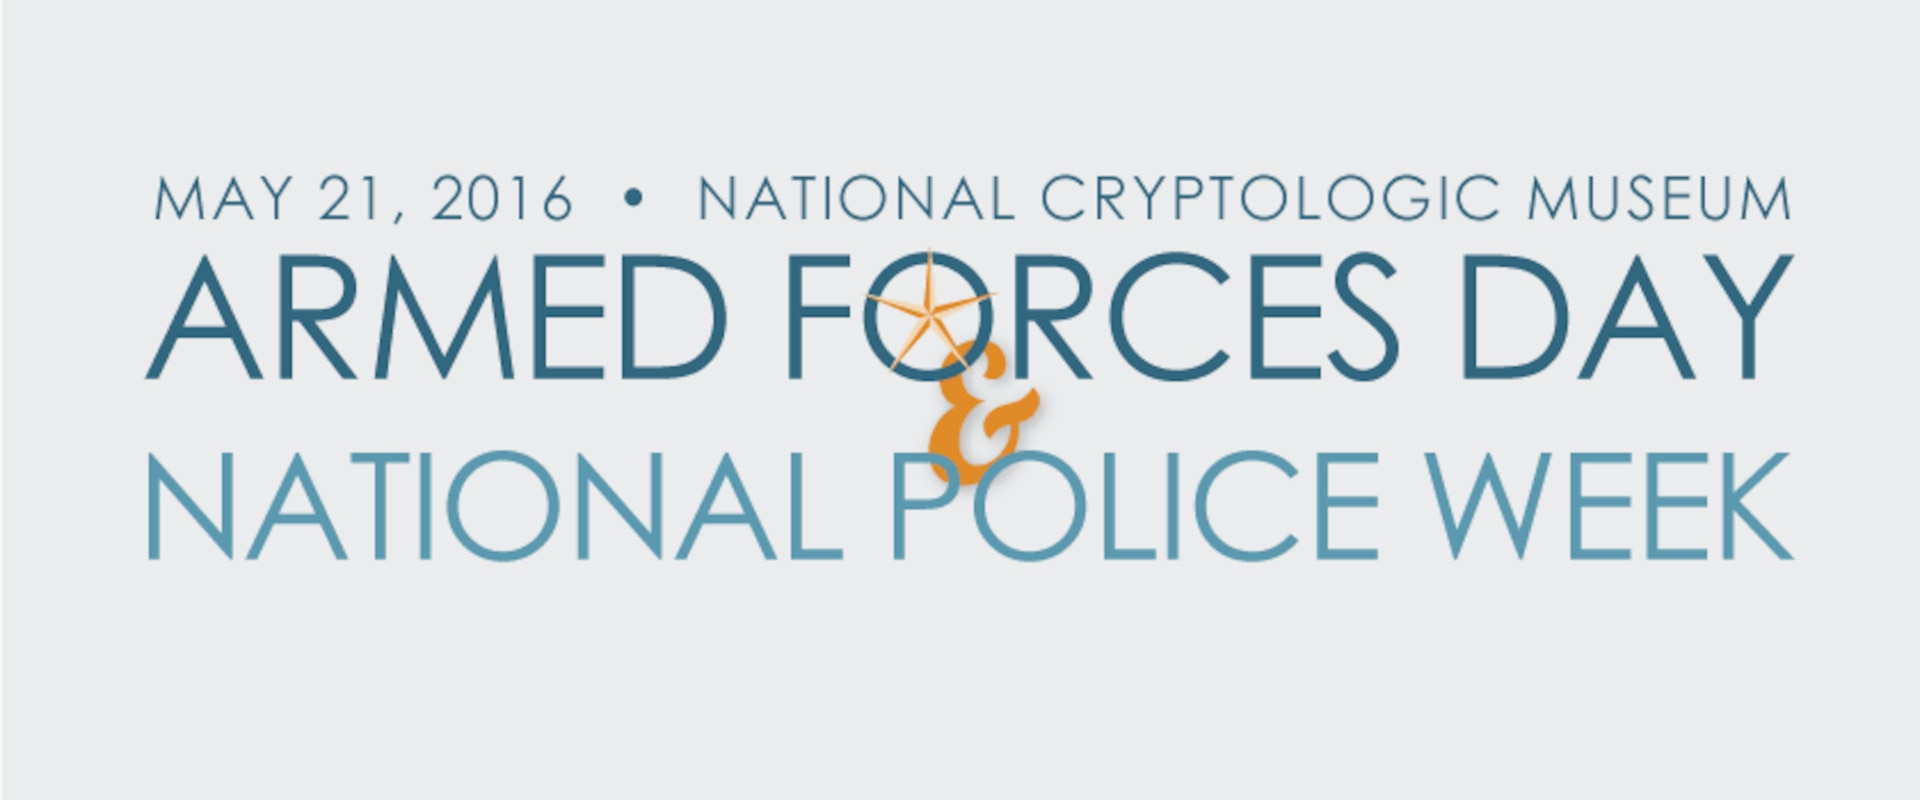 Armed Forces Day & National Police week